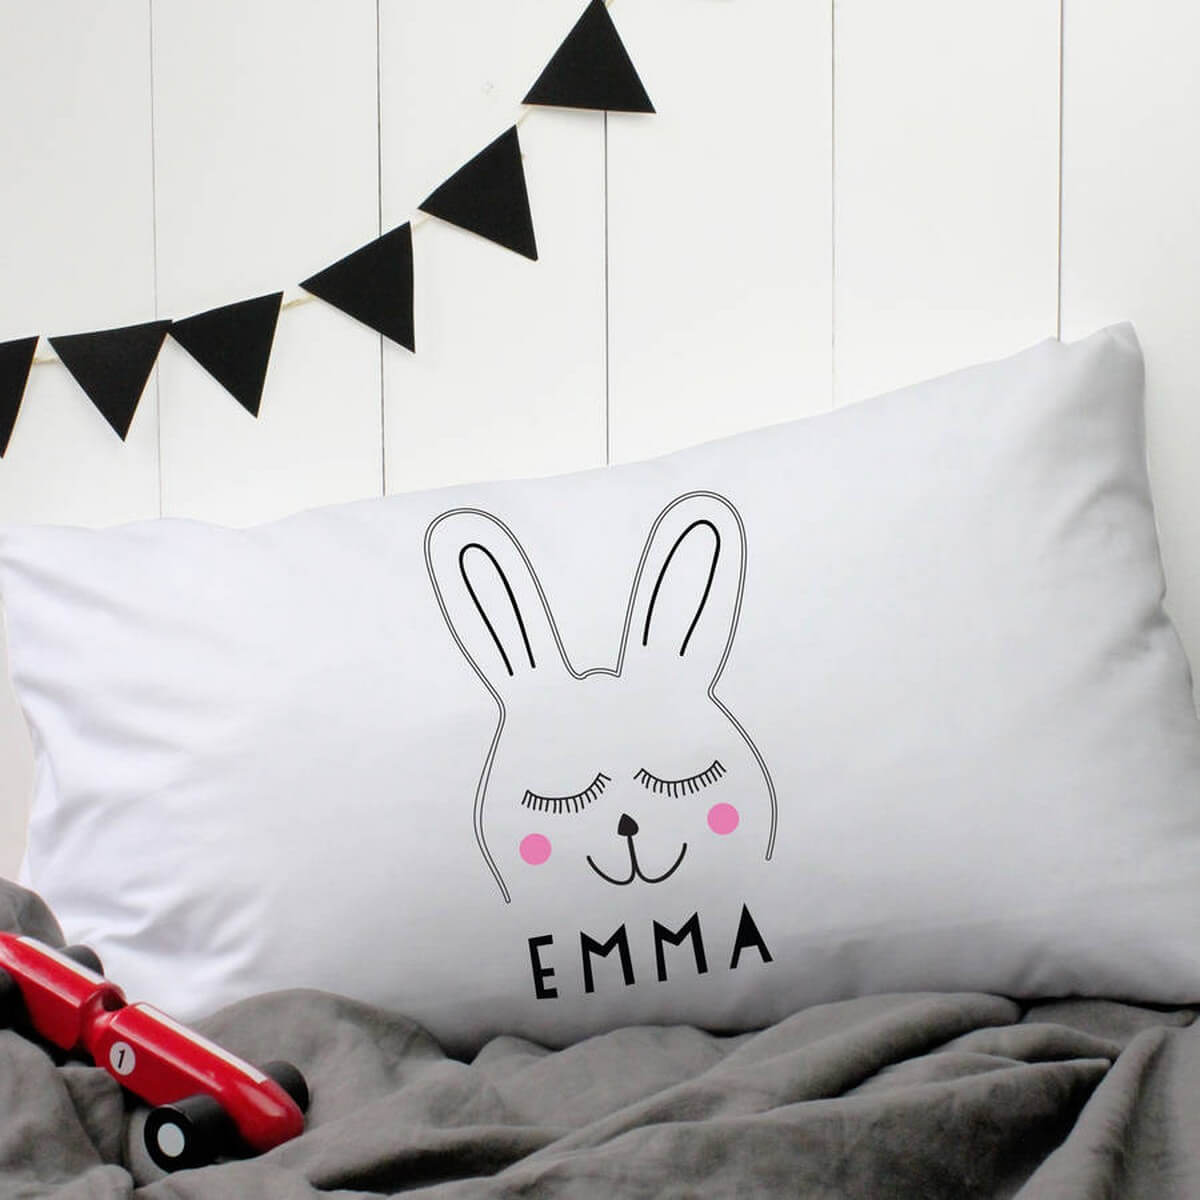 Cozy and Creative Pillow Decorations To